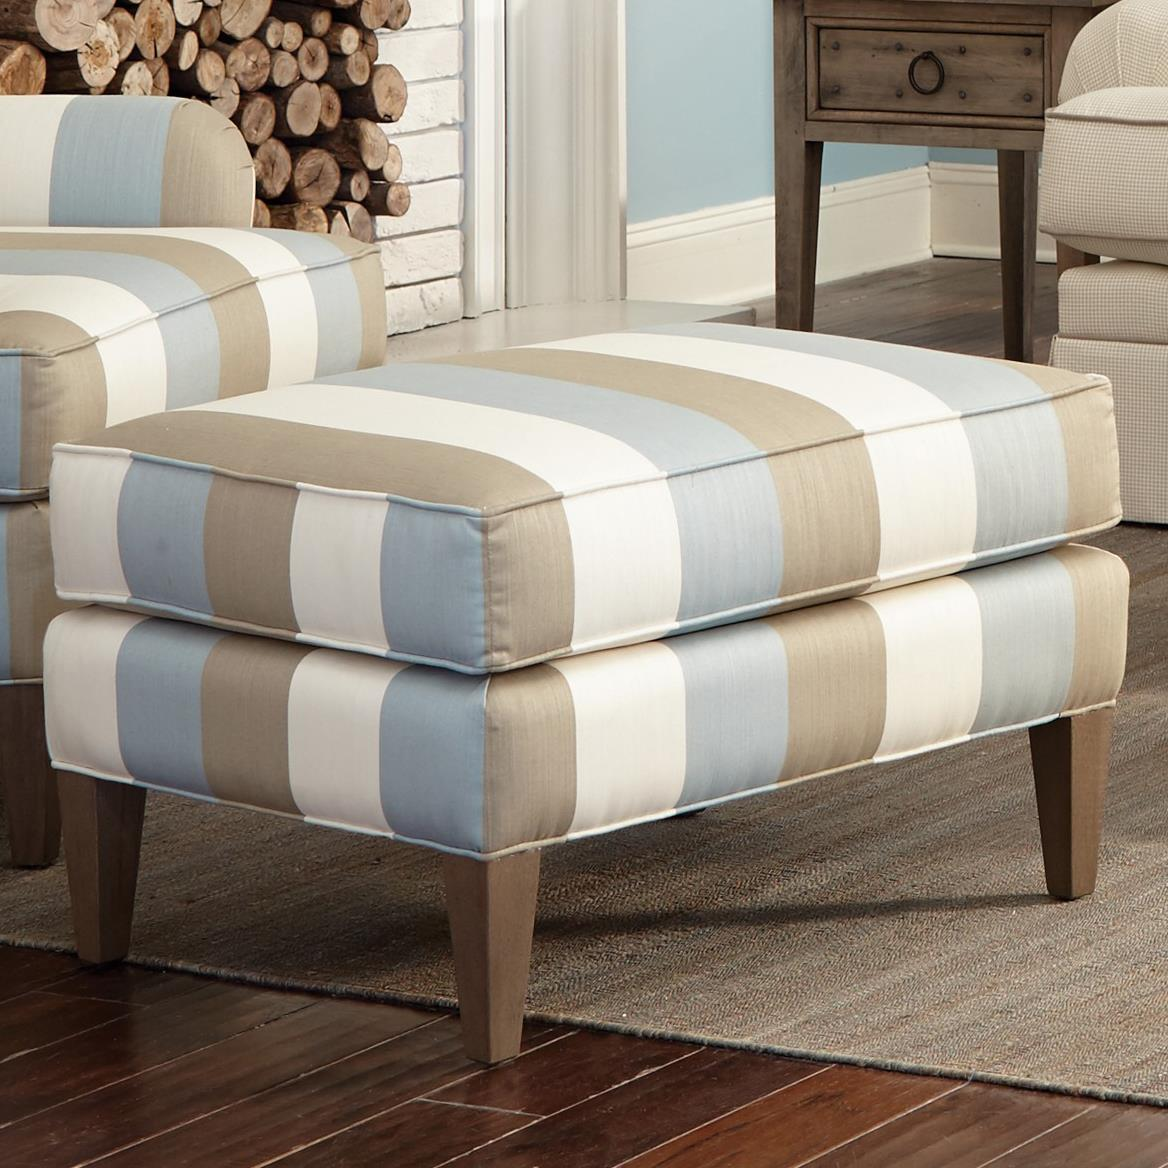 Accent Chairs Ottoman by Craftmaster at Bullard Furniture